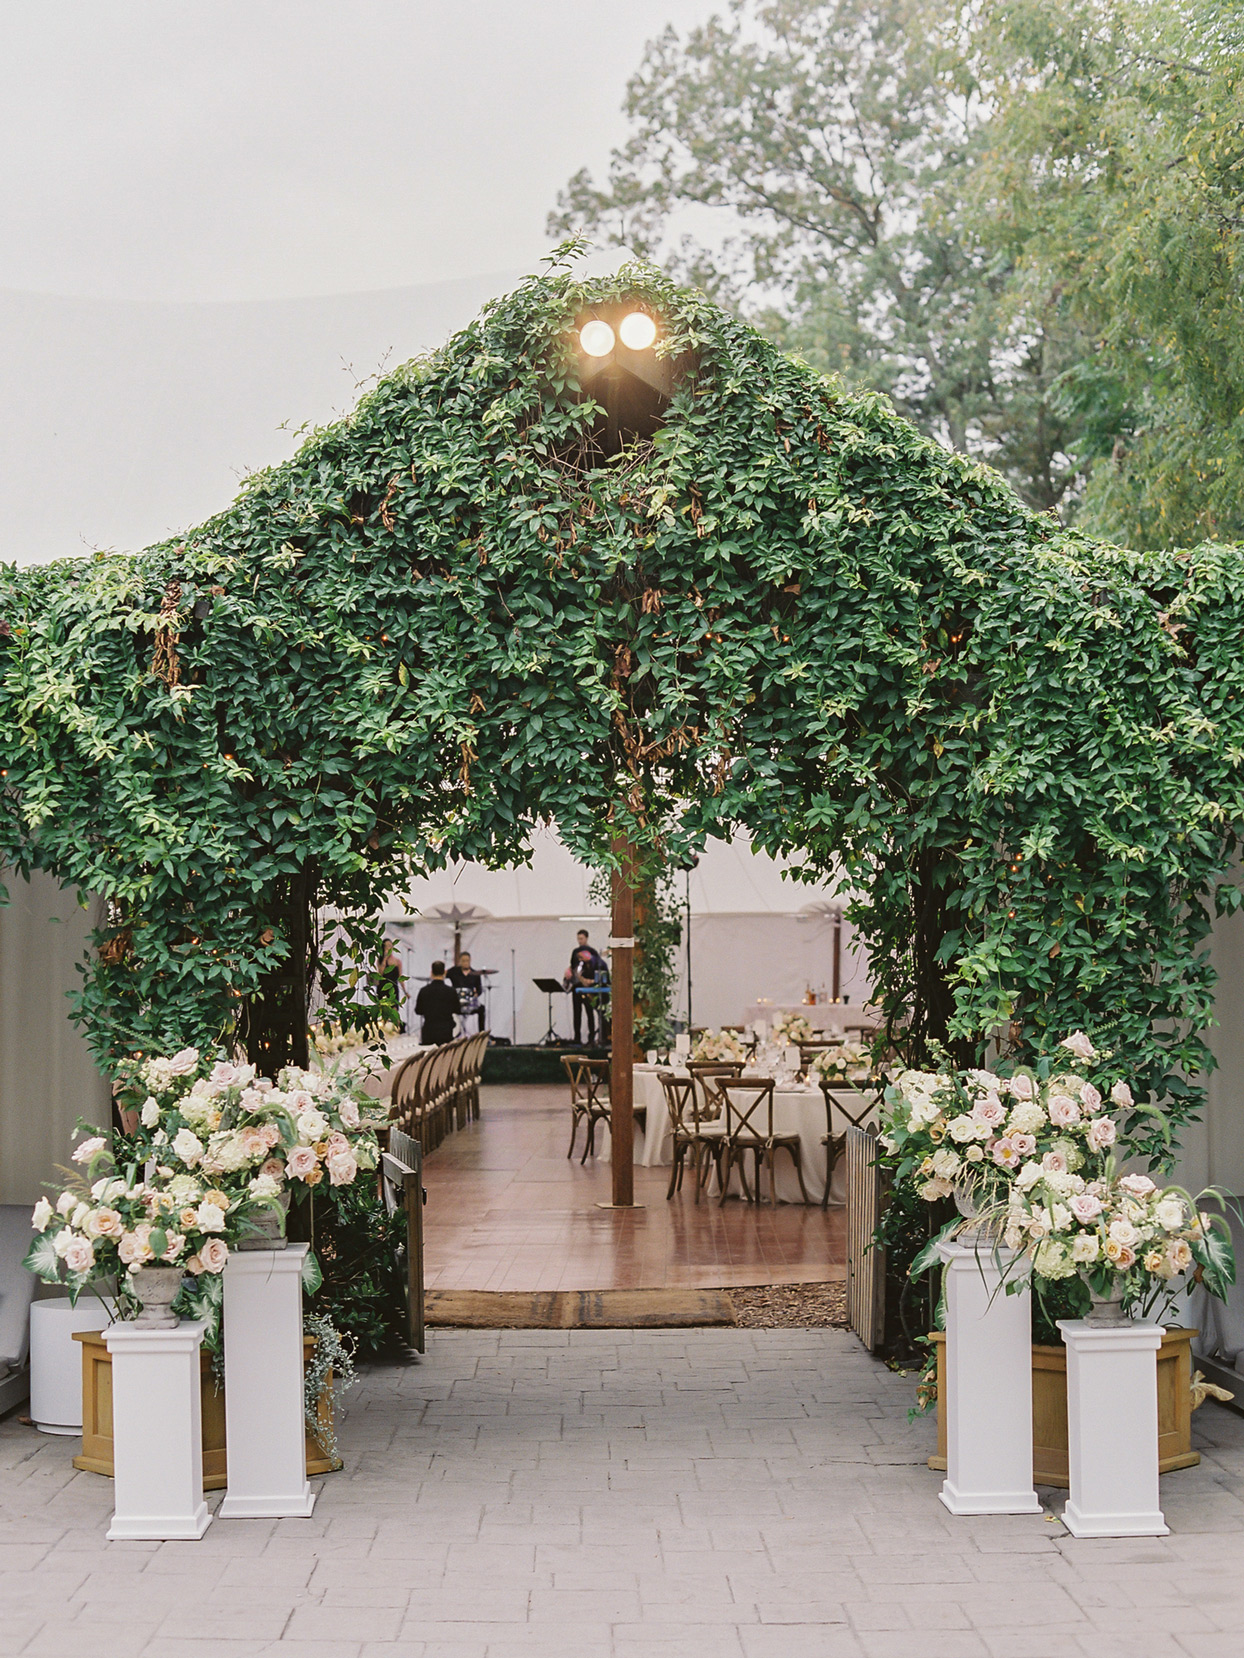 Wedding tent entrance covered in greenery